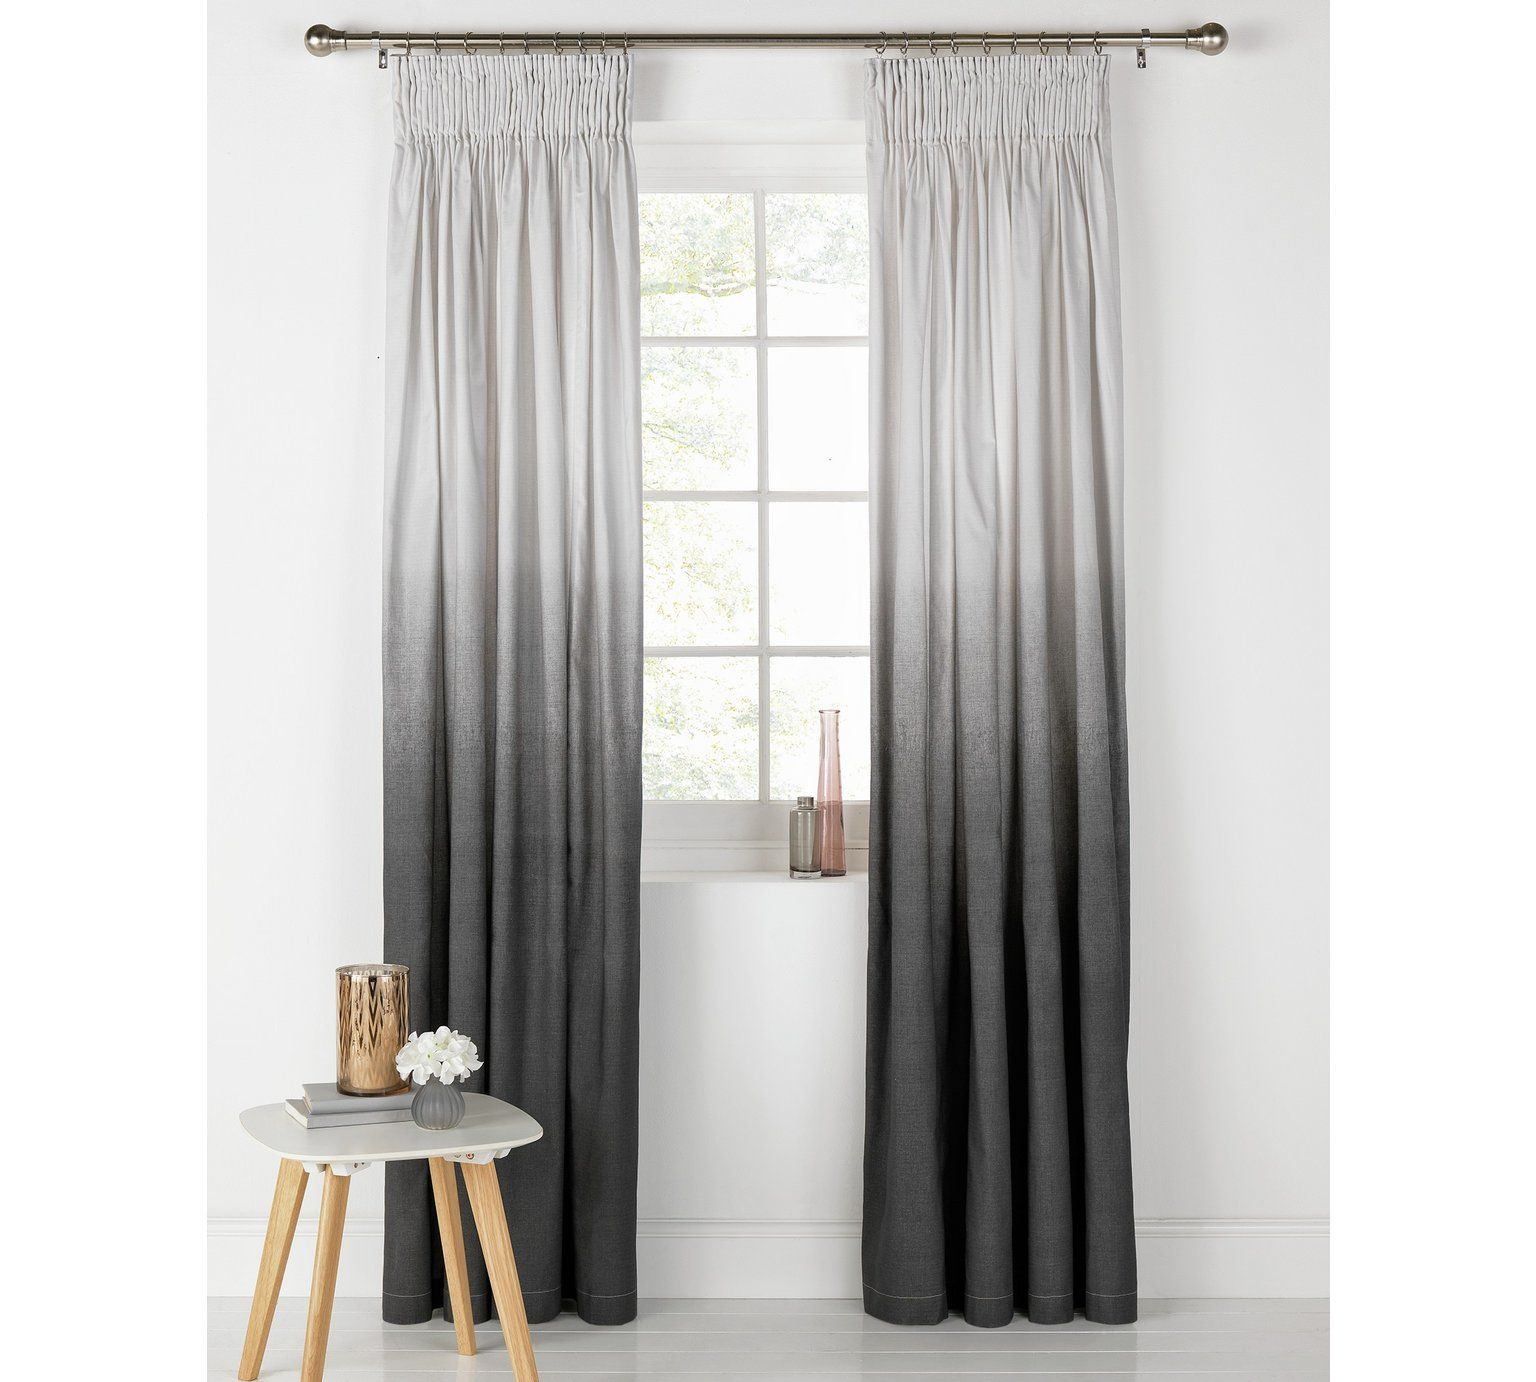 Buy HOME Ombre Unlined Pencil Pleat Curtains